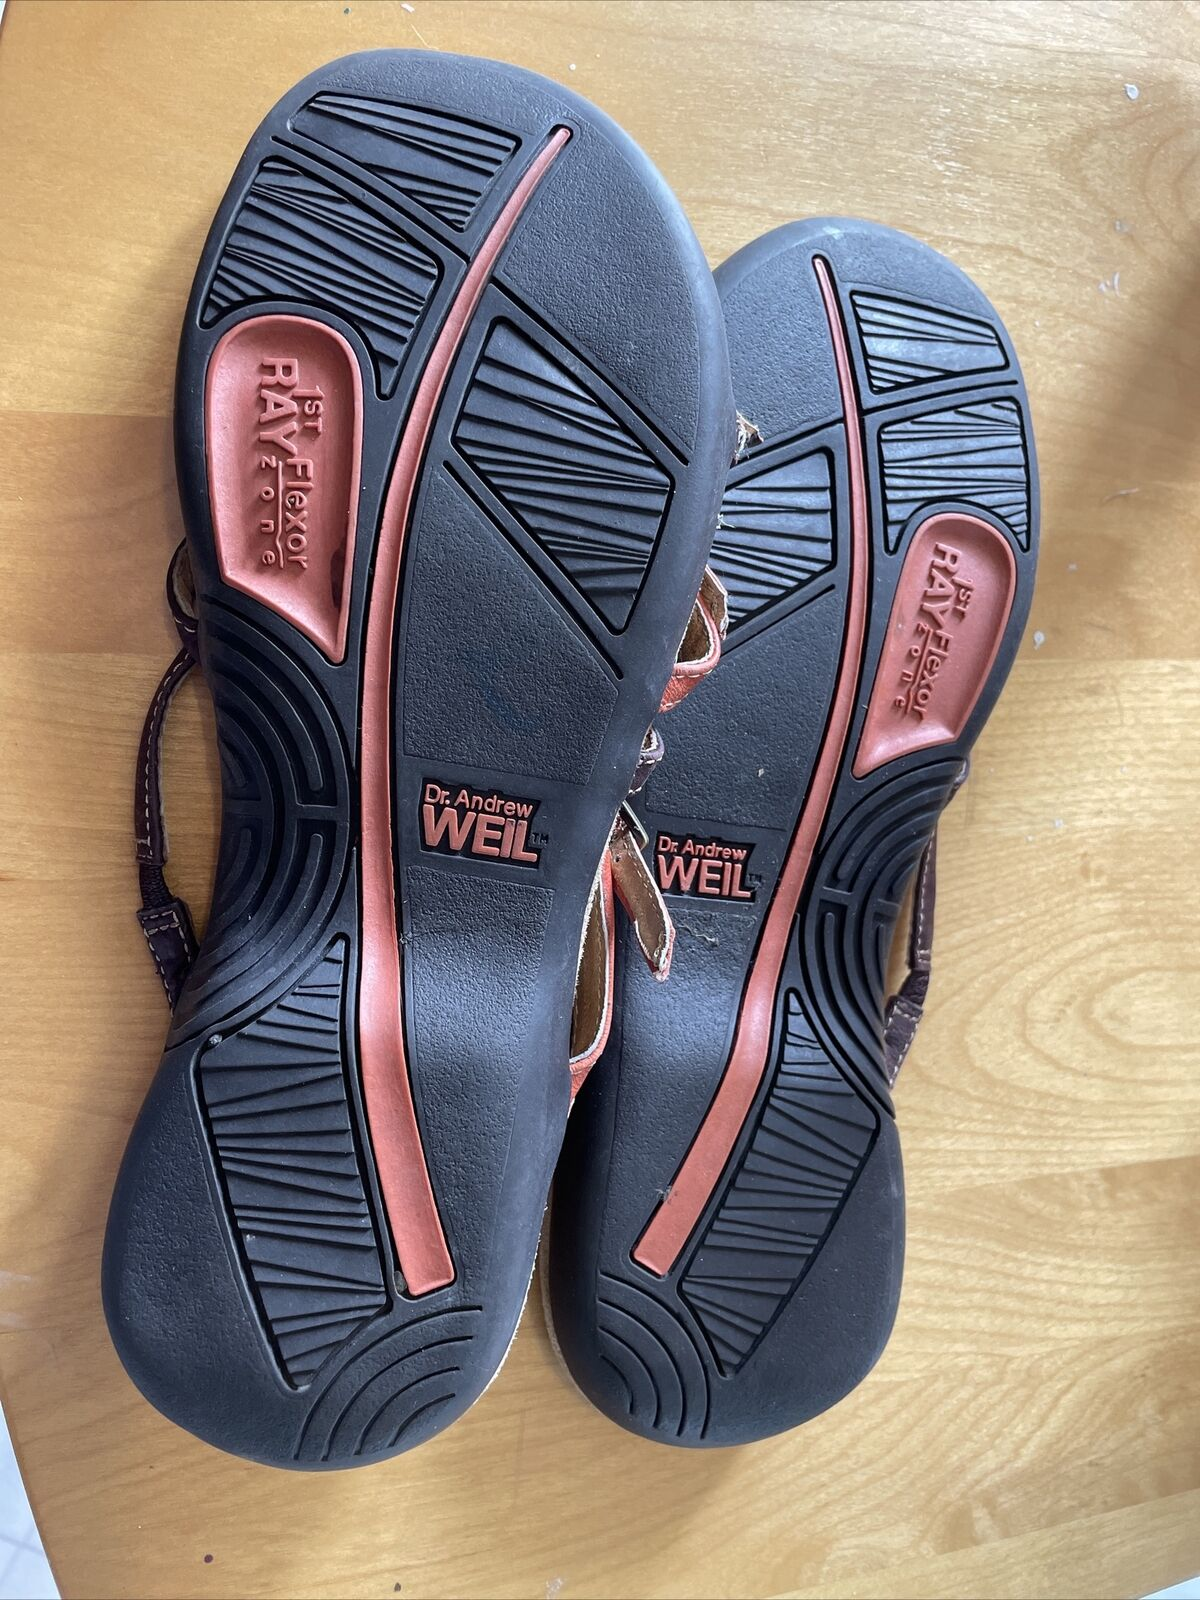 Weil Orthaheel sandal size 8 - image 4